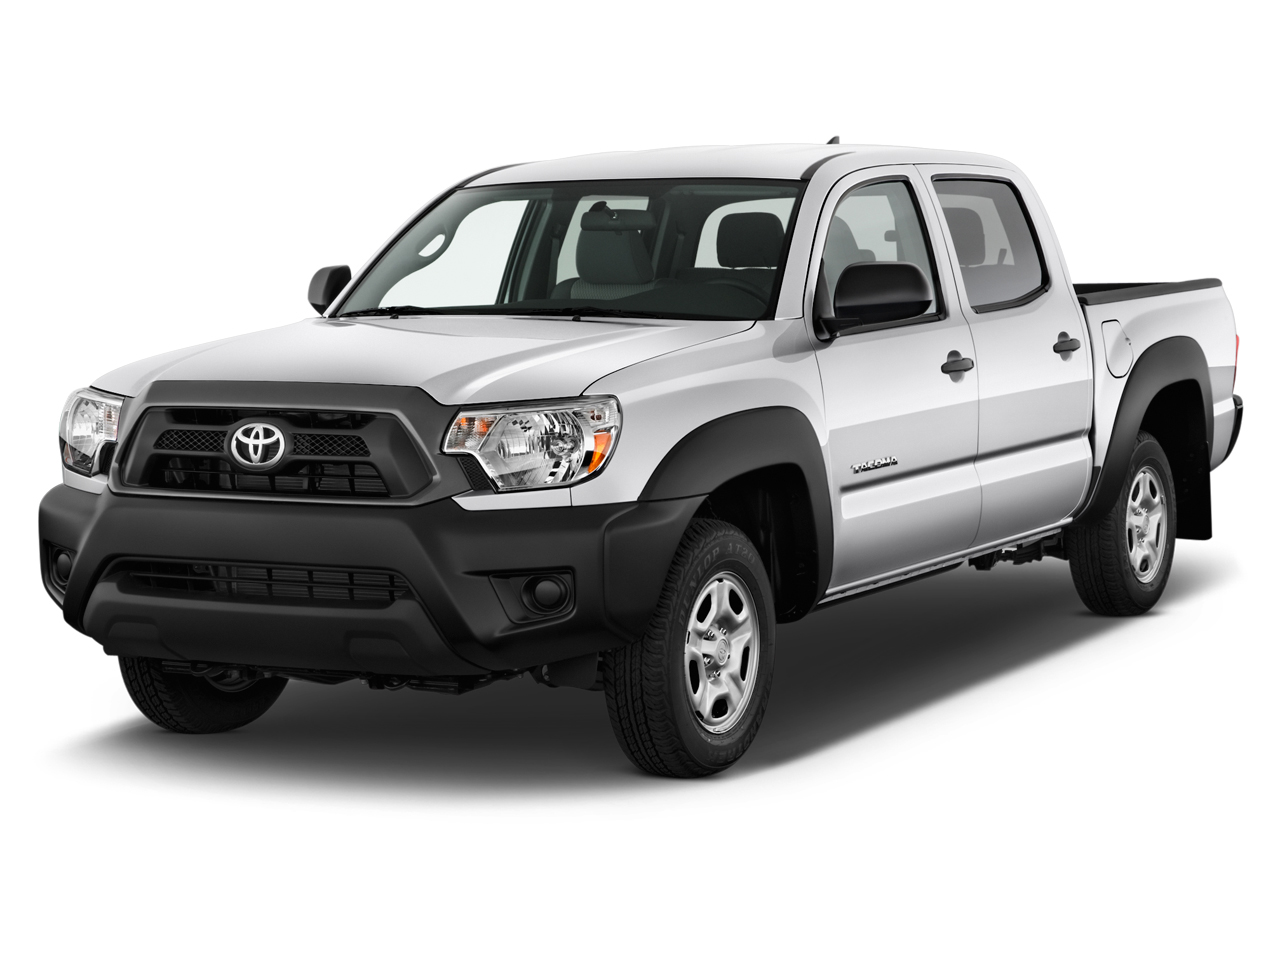 2014 toyota tacoma review ratings specs prices and. Black Bedroom Furniture Sets. Home Design Ideas